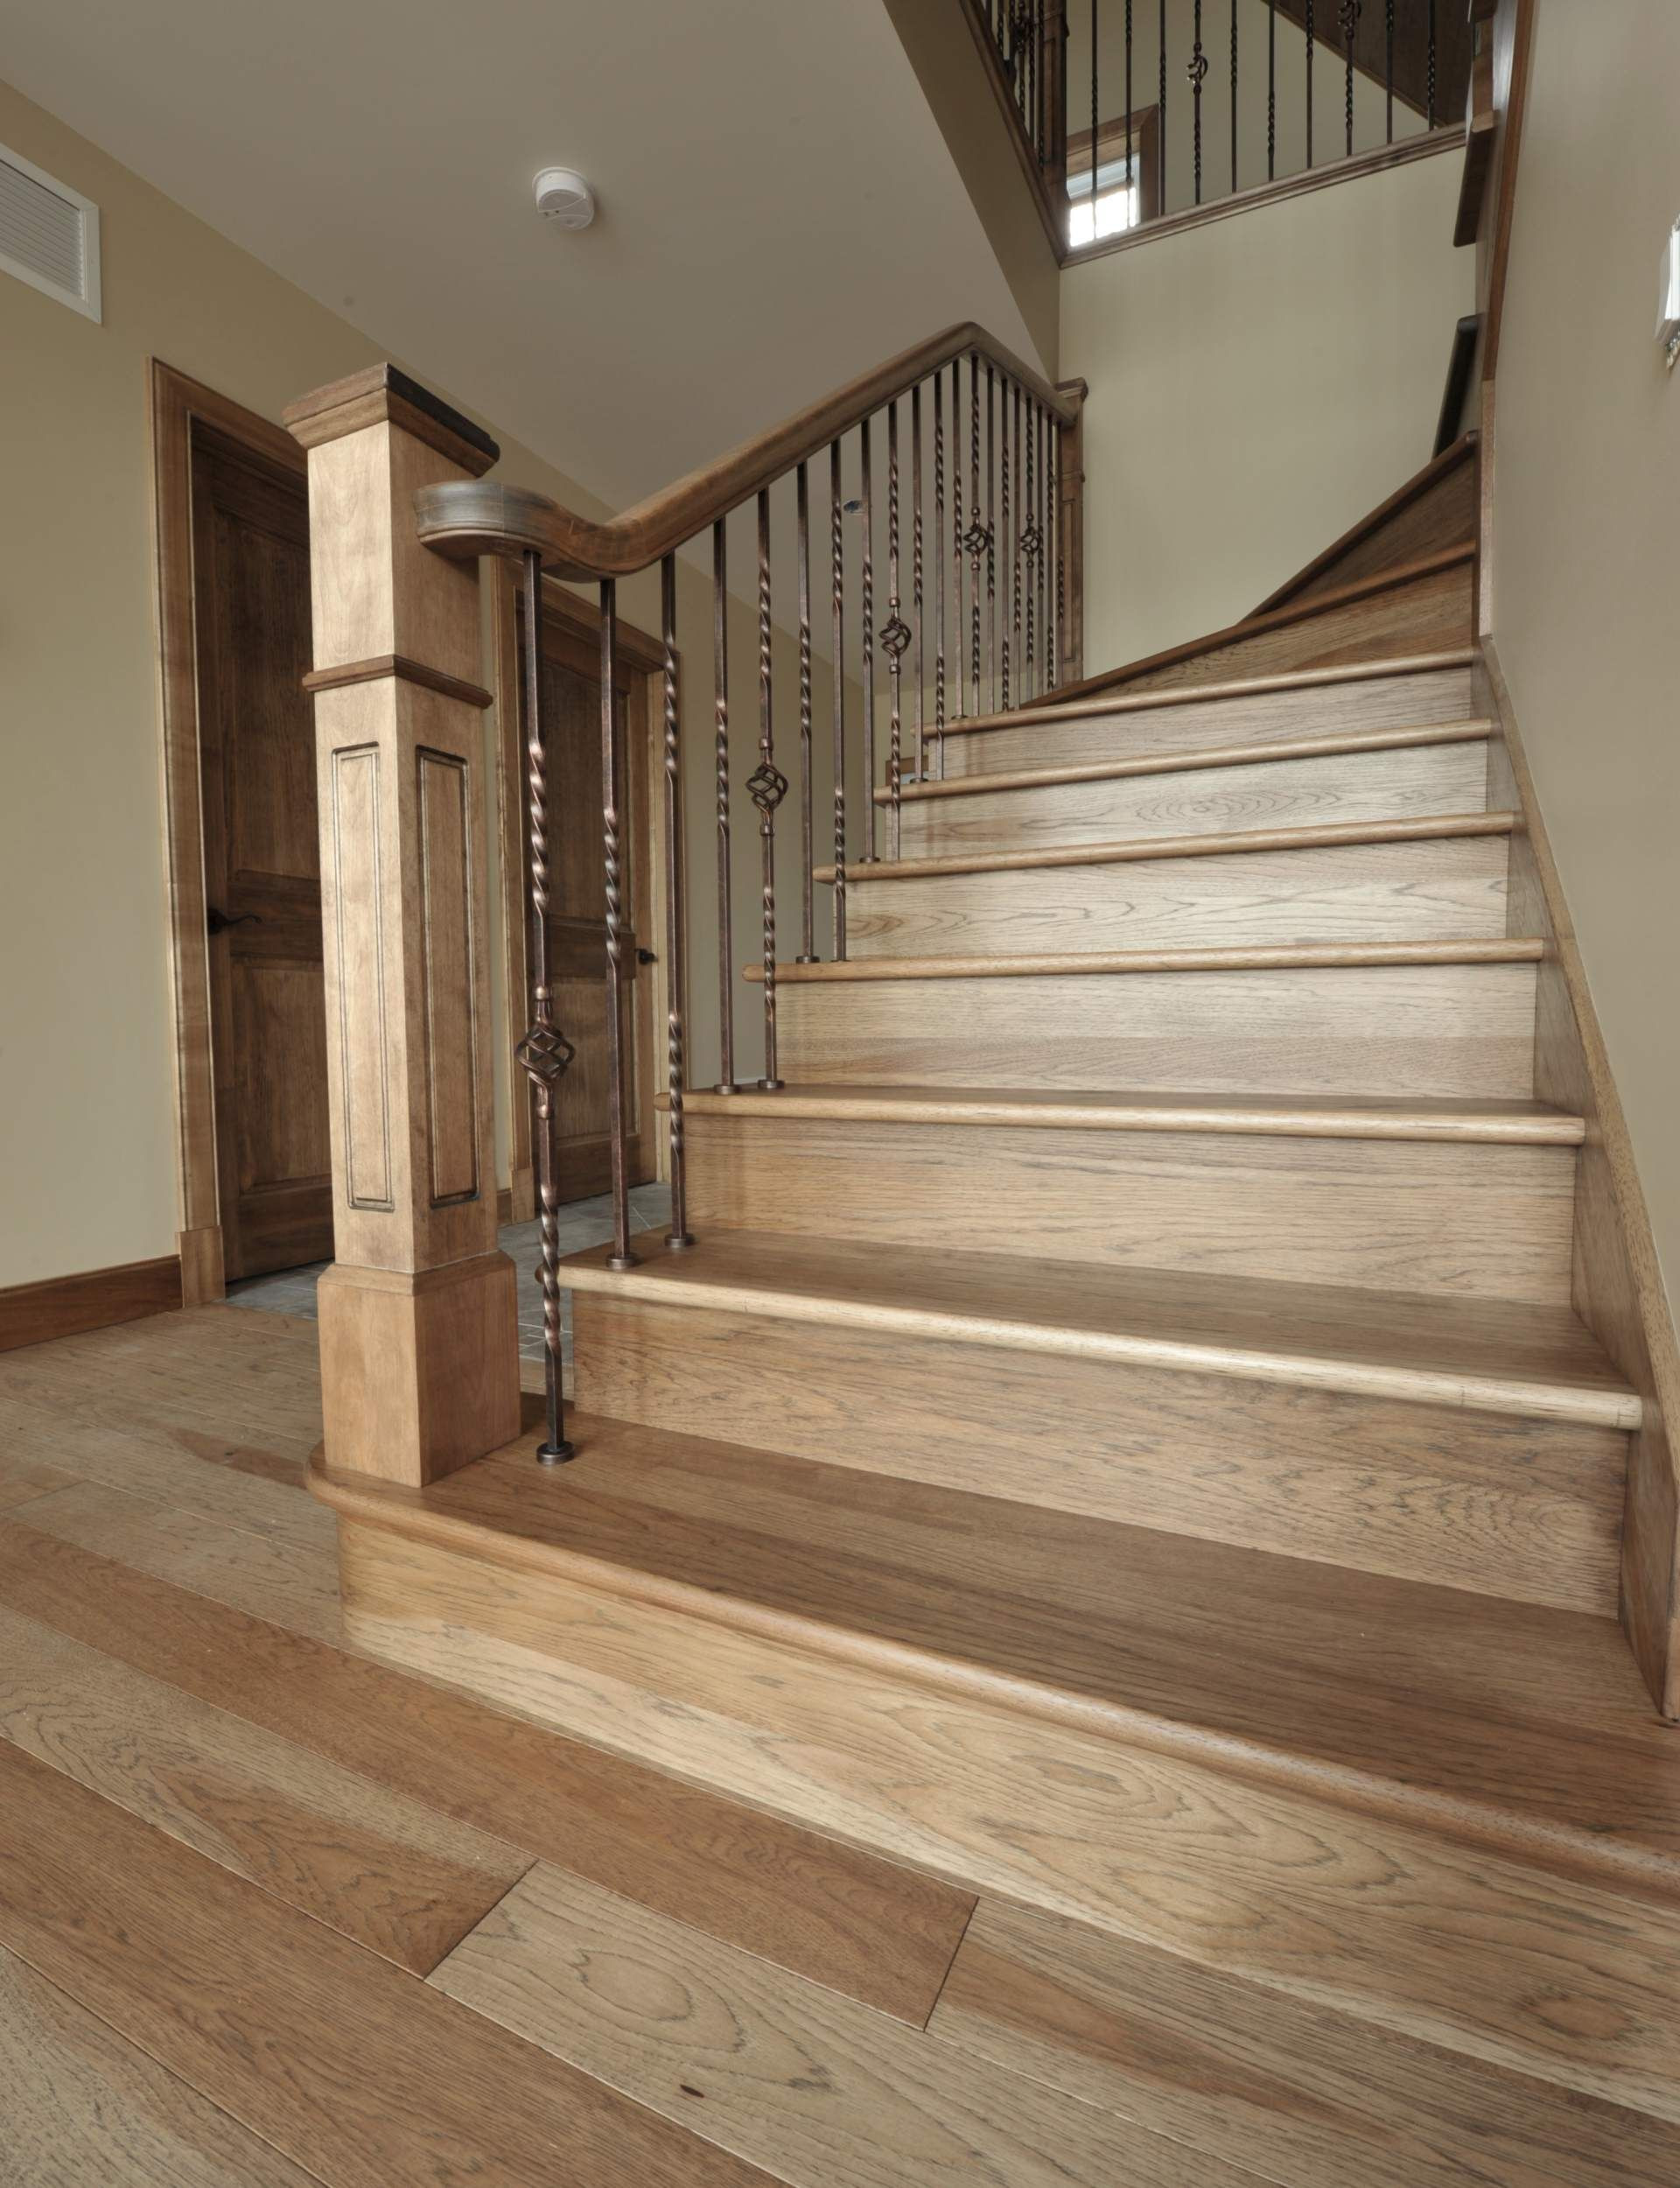 hardwood floors and stairs of escalier bois et matal przedpoka³j pinterest searching with escalier bois et matal a· imageswood stairssearching